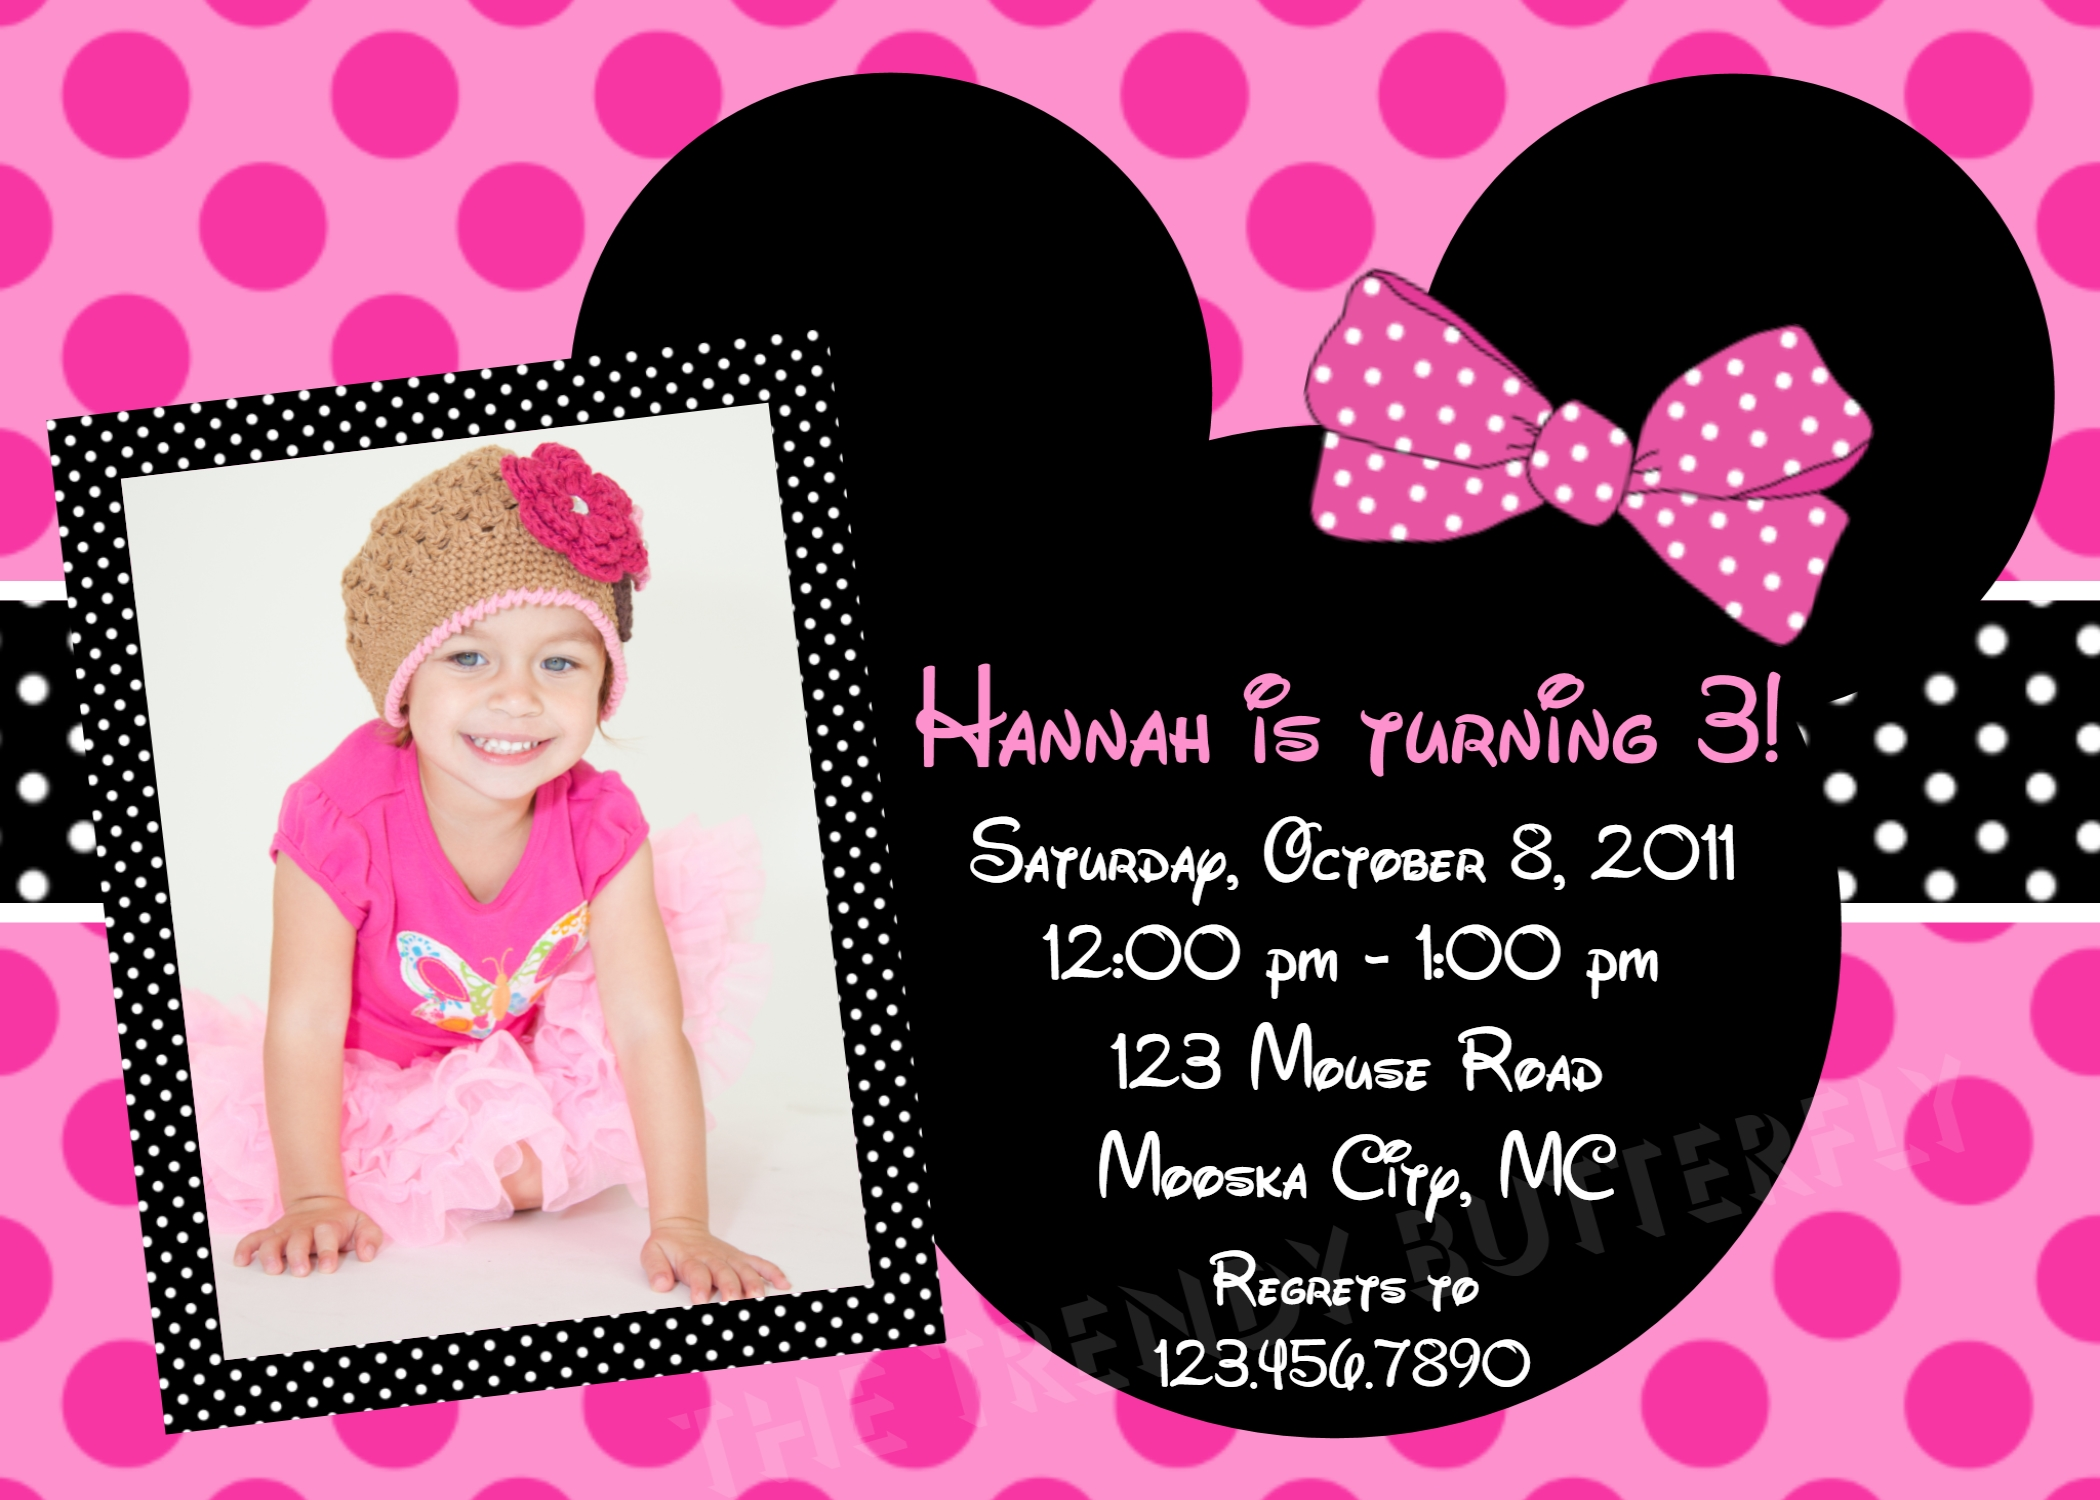 Minnie Mouse Birthday Invitations Templates - Elegant birthday invitation free templates